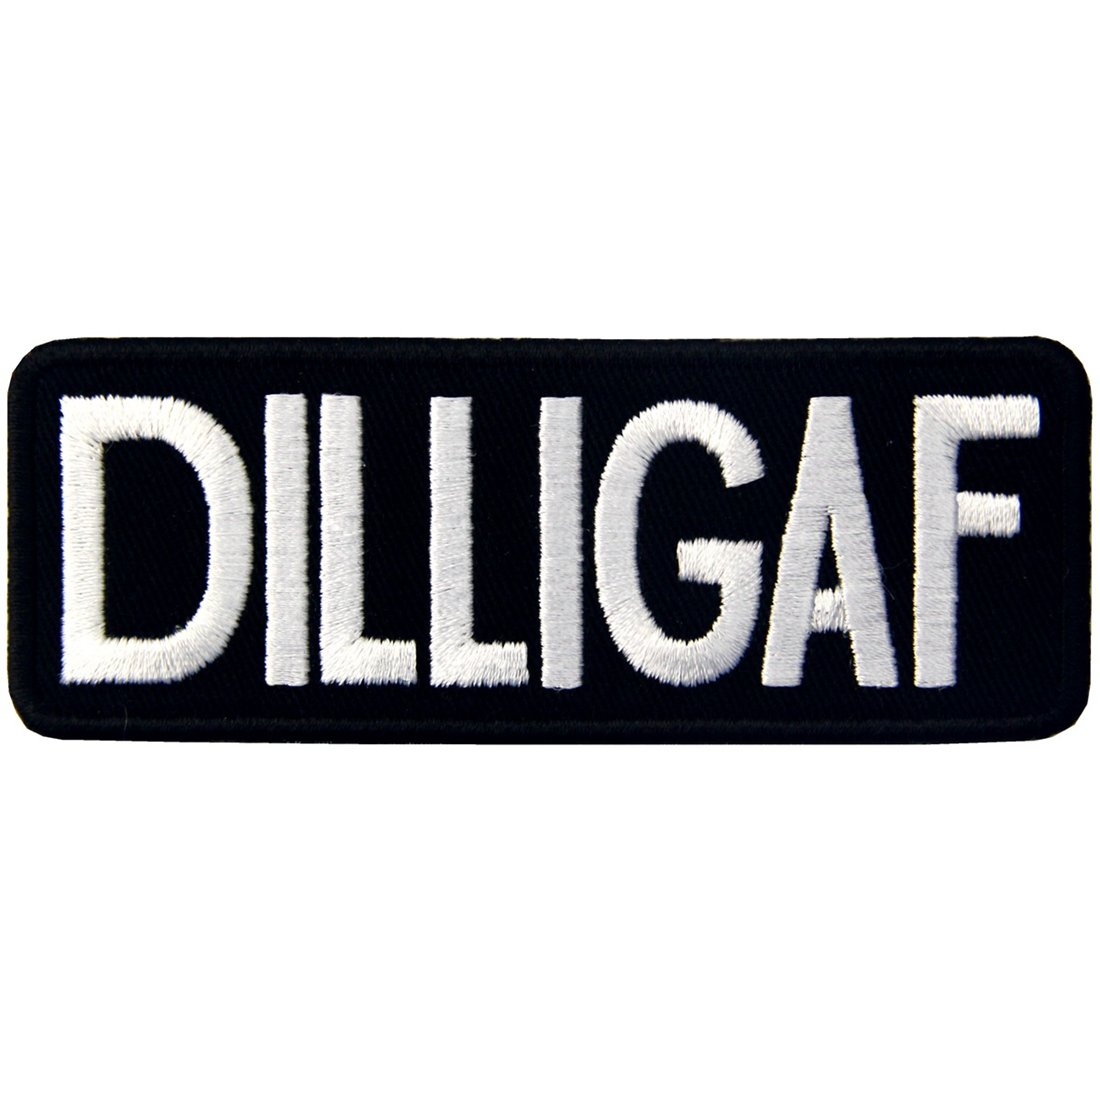 DILLIGAF Patch Biker Embroidered Applique Badge Iron On Sew On Emblem EmbTao